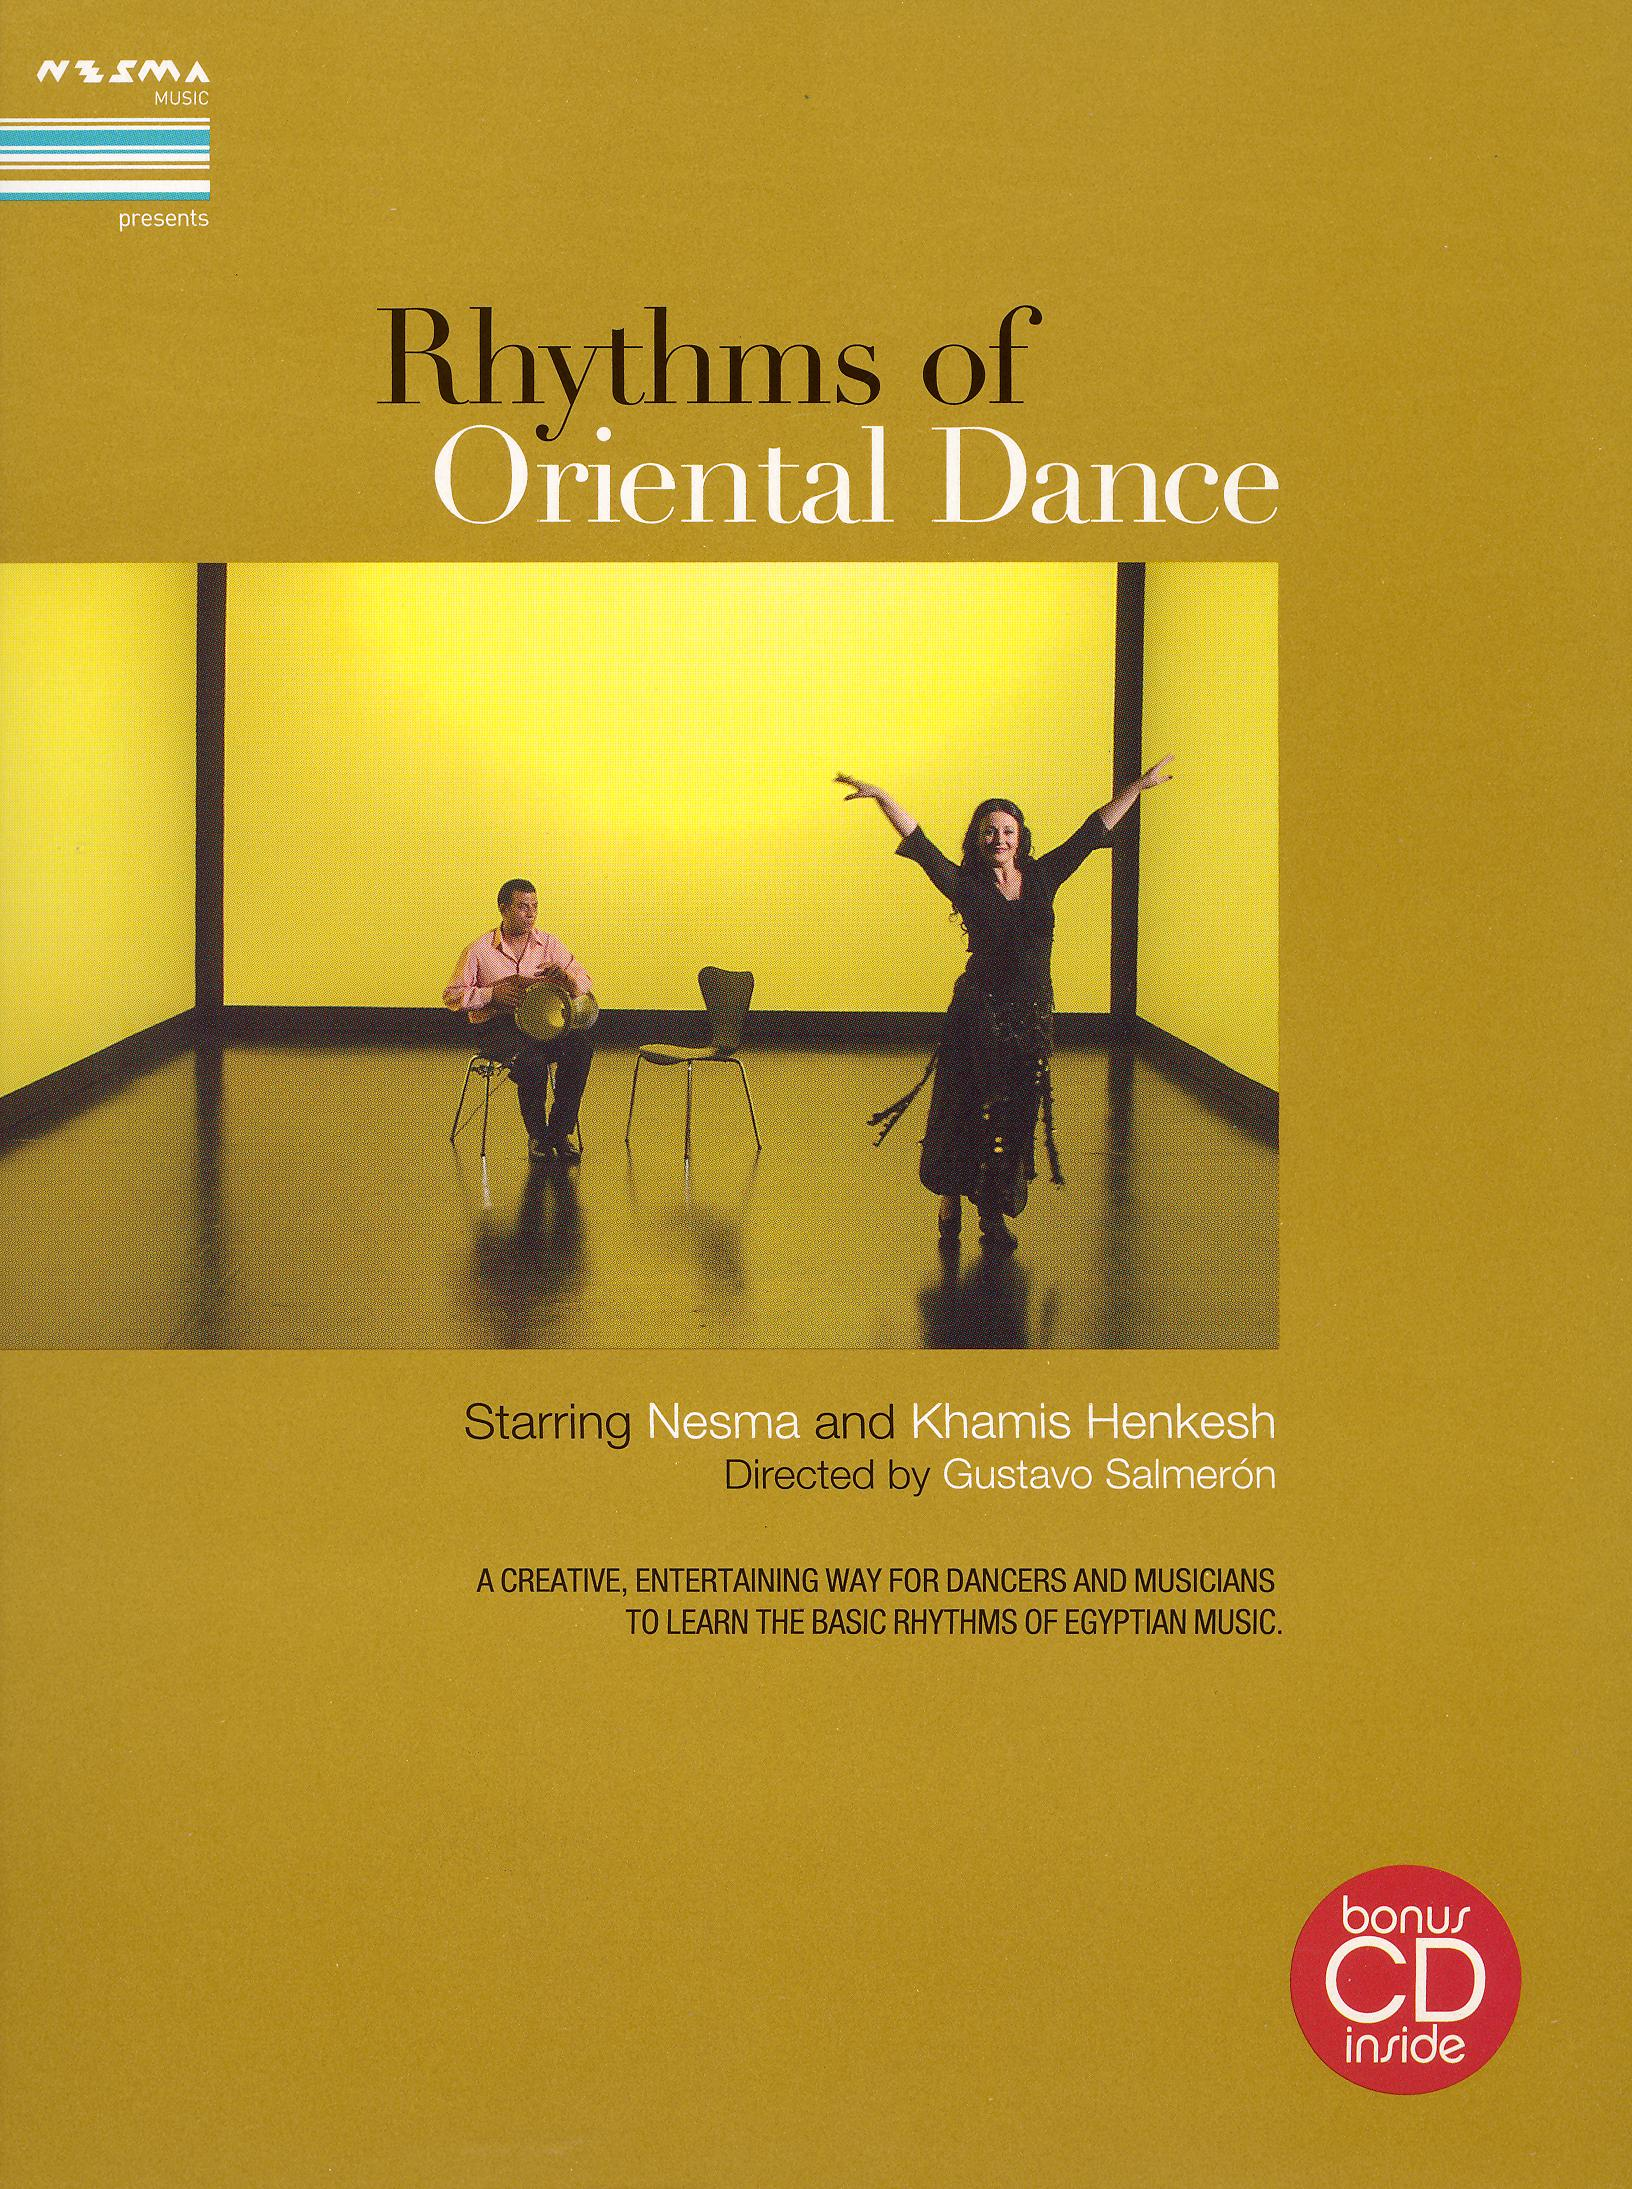 Nesma/Kasmis Henkish: Rhythms of Oriental Dance